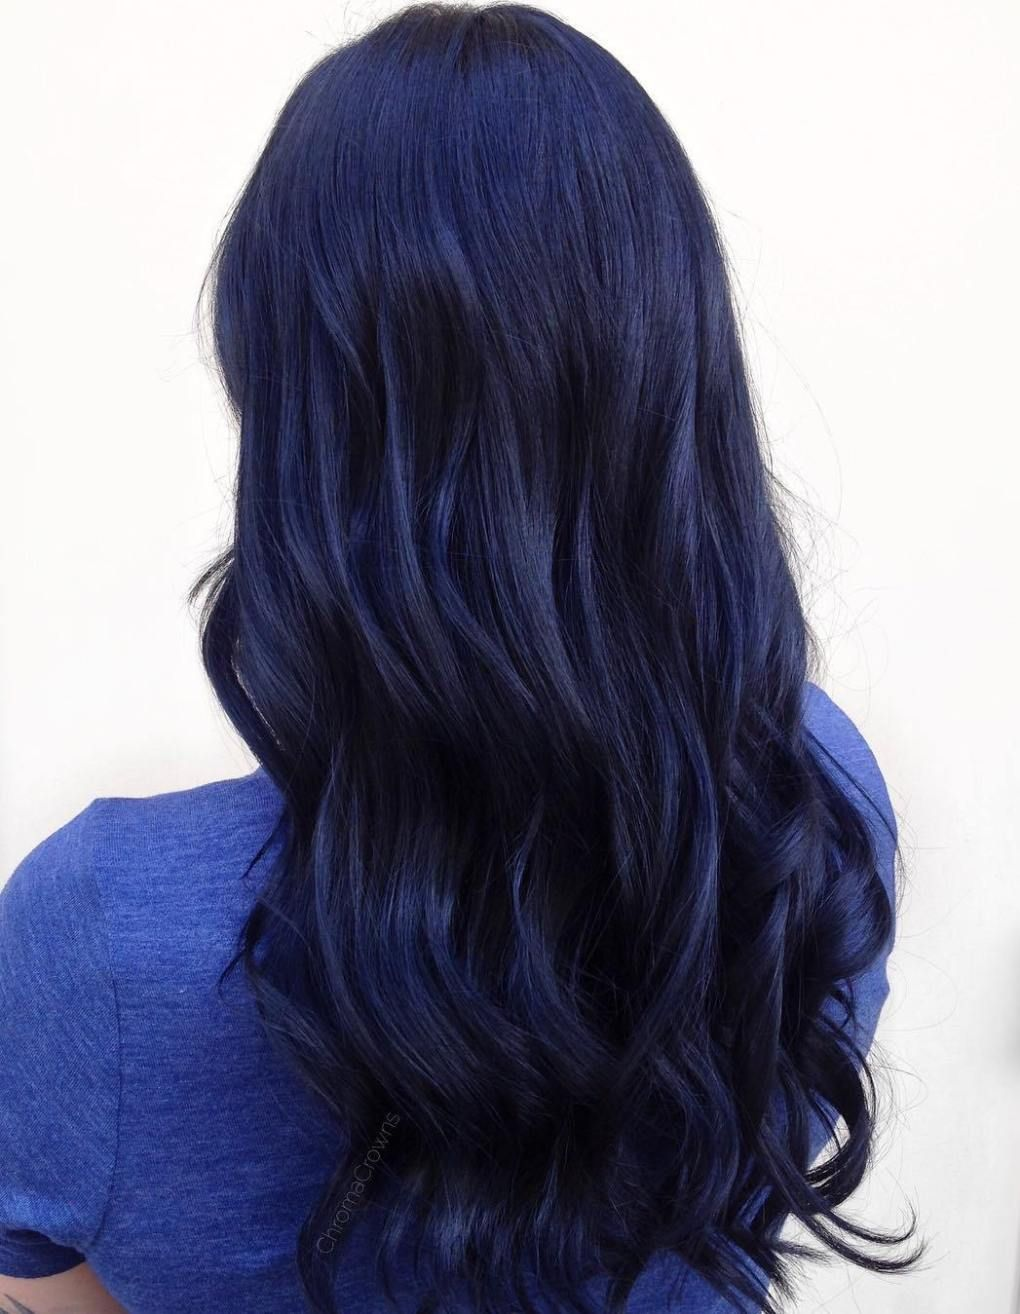 Schwarz Blaue Haare Blue Black Hair How To Get It Right Hair